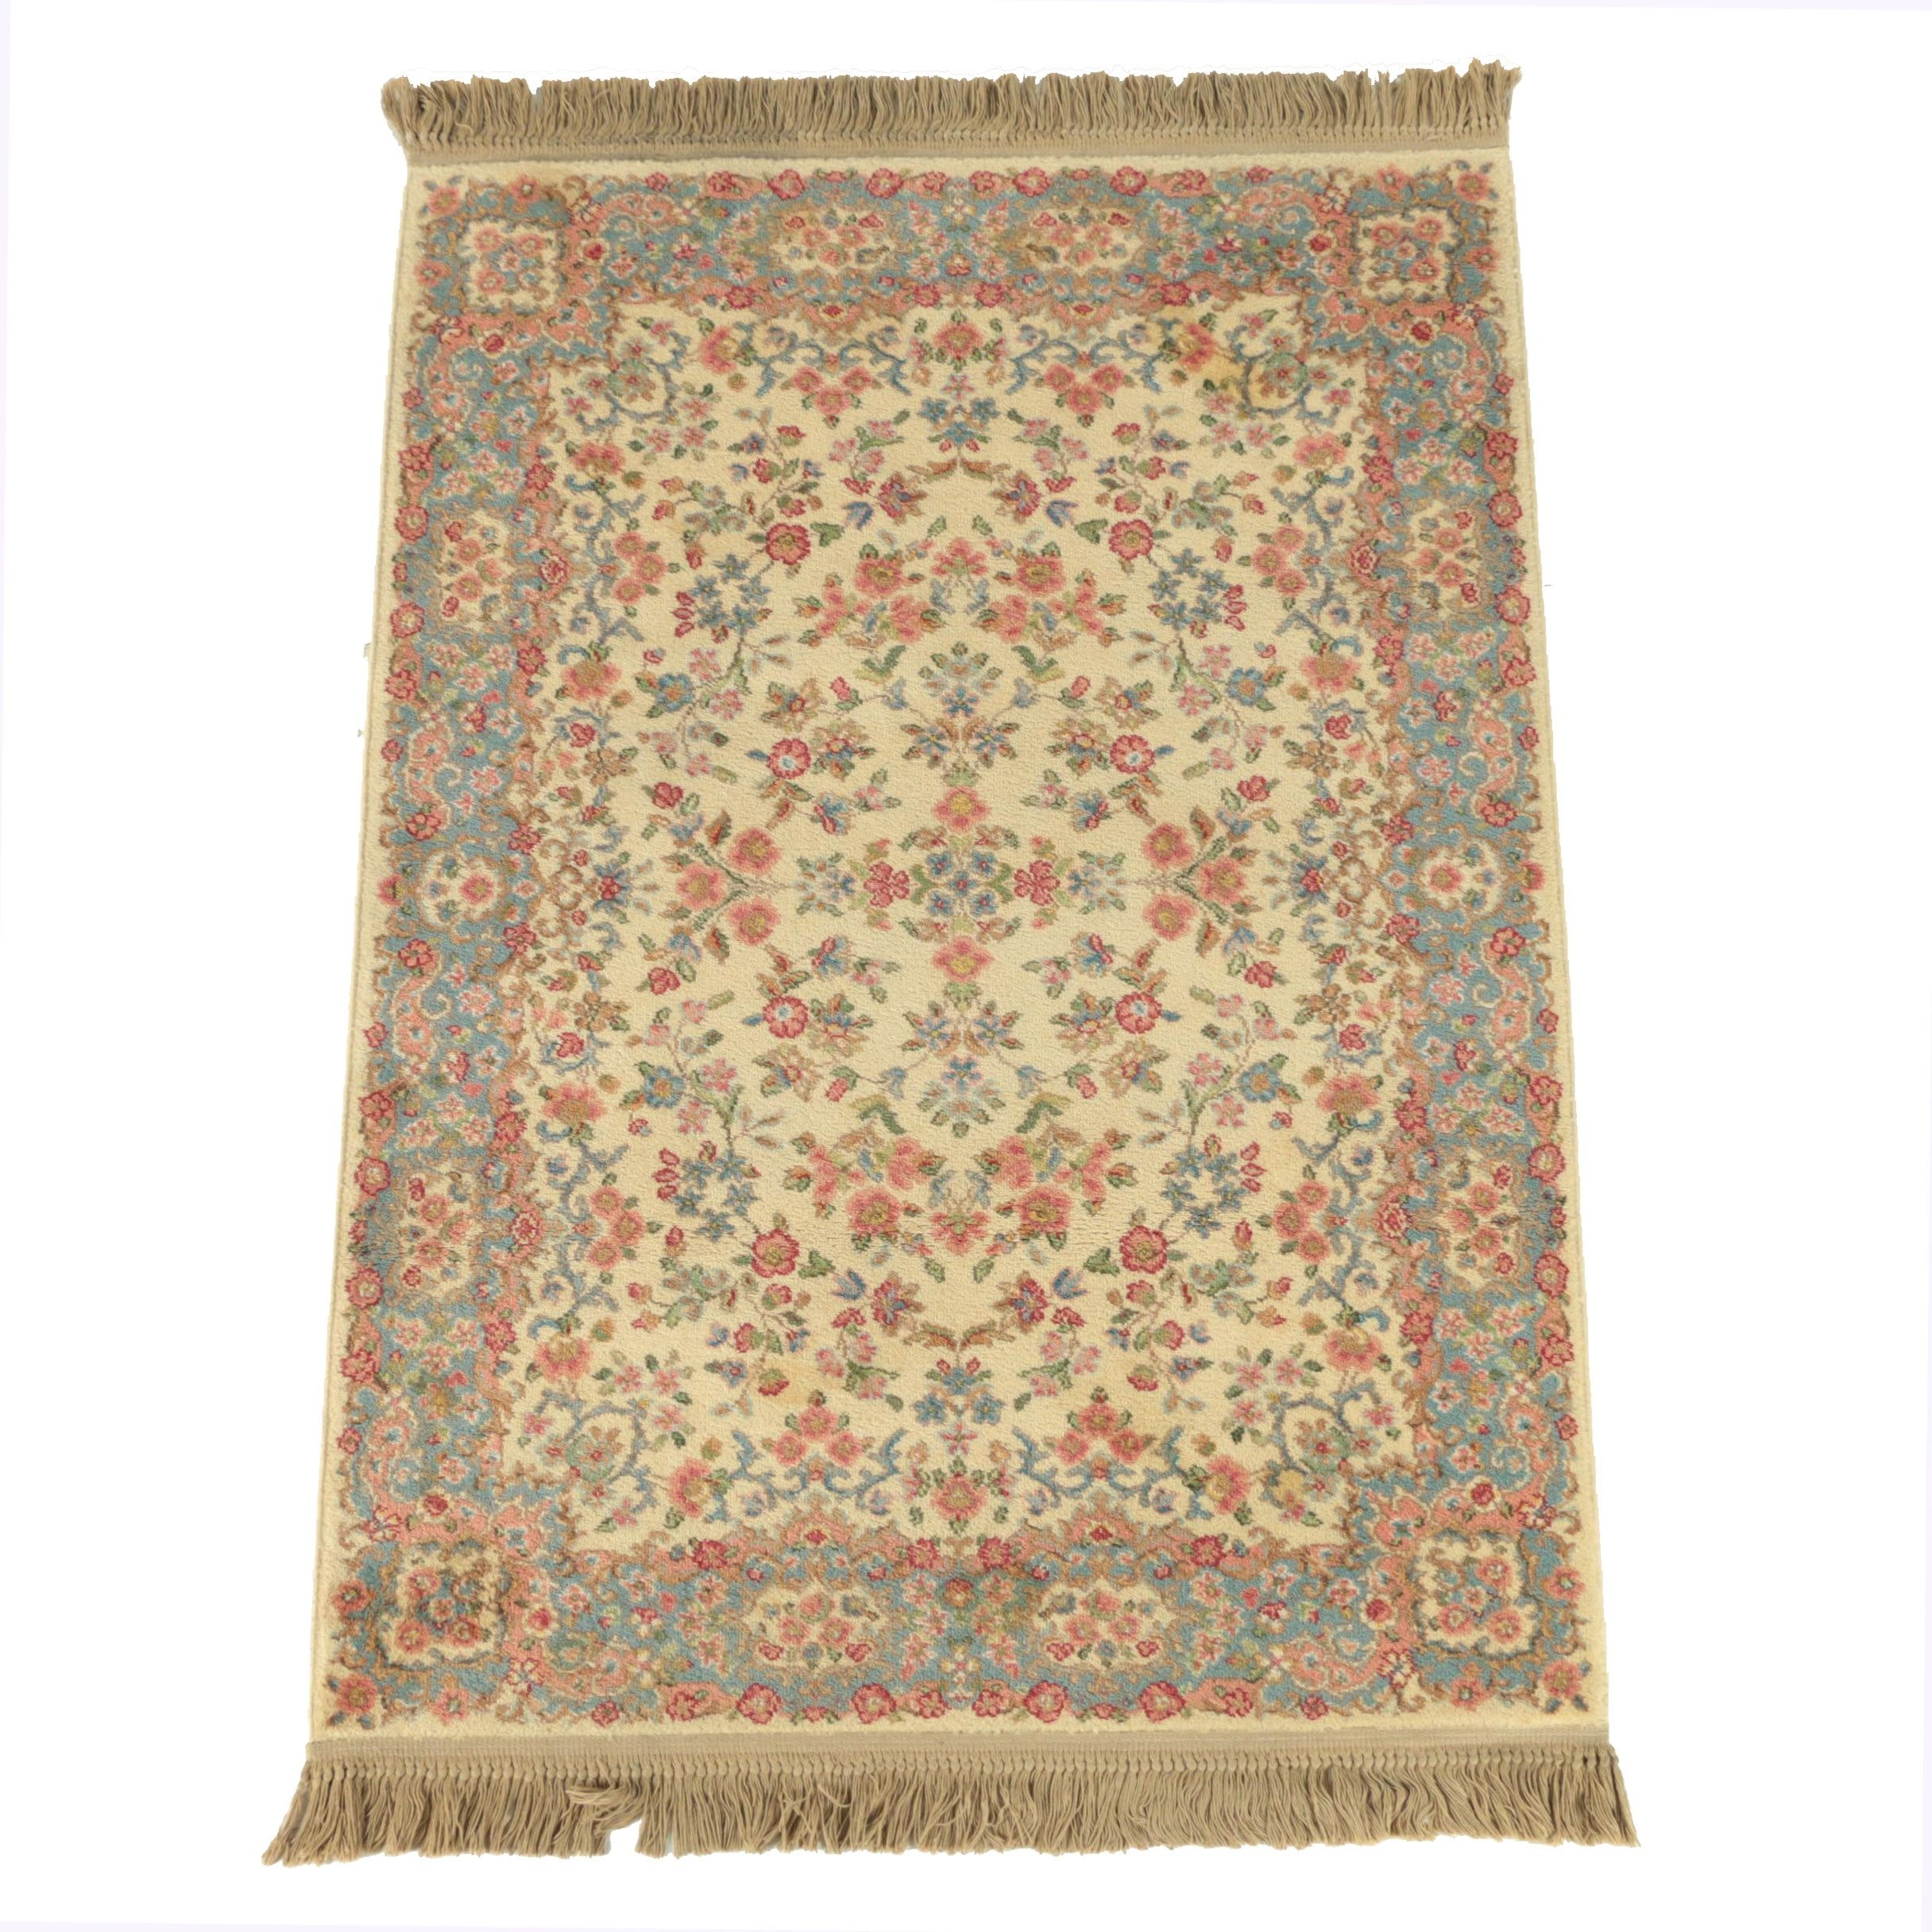 "Power-Loomed Karastan ""Ivory Kirman"" Wool Area Rug"